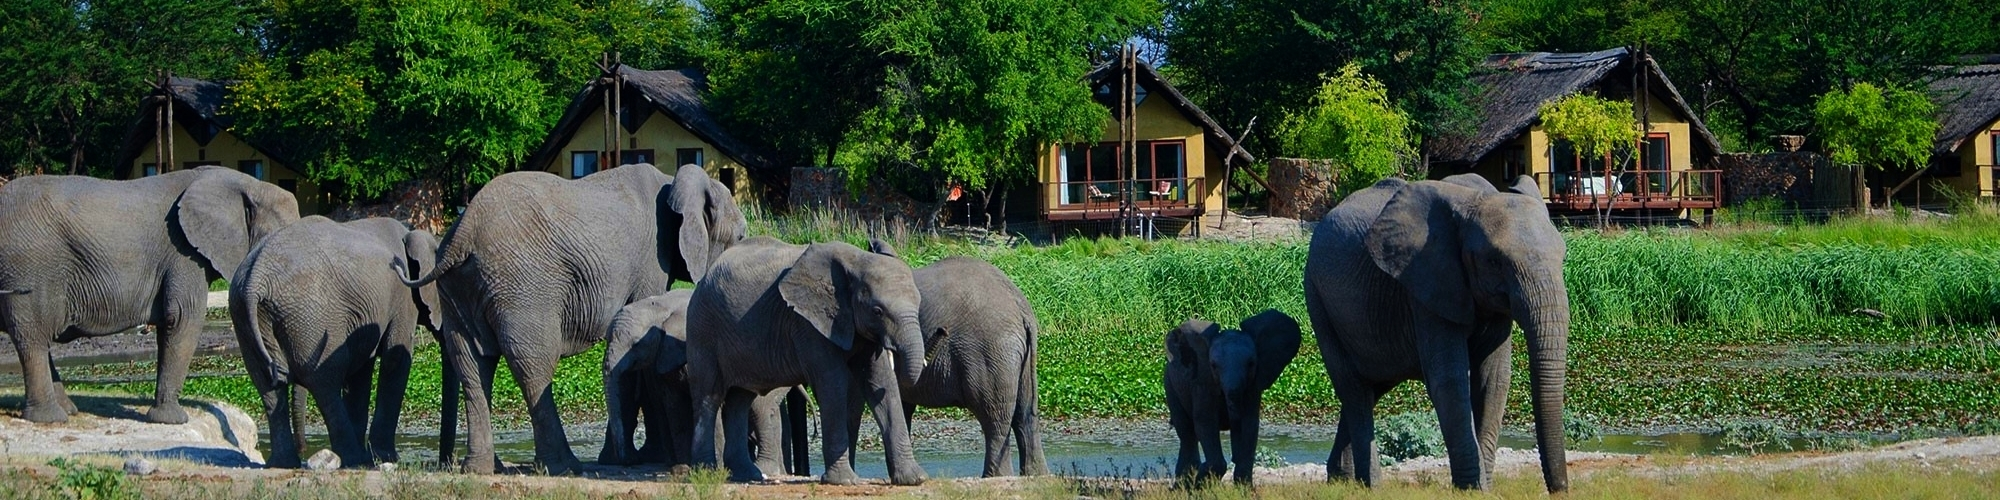 Tau Game Lodge, herd of elephants in front of chalets